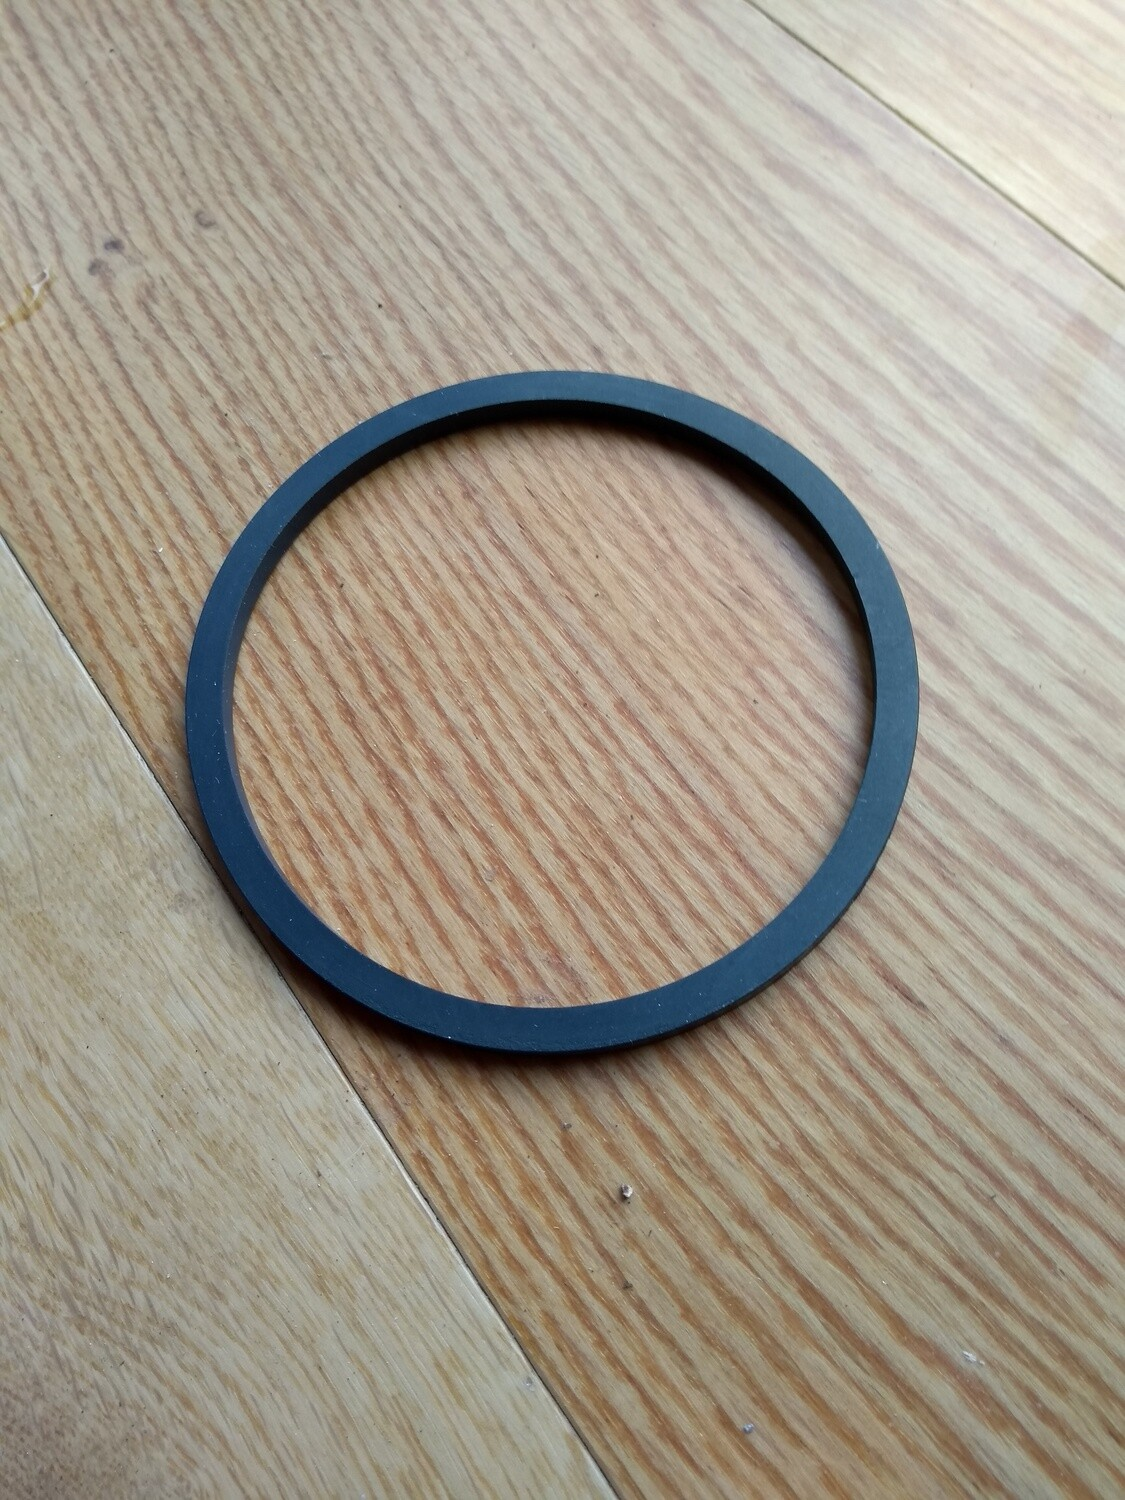 Cam gear Tension Ring 1.4, 1.6